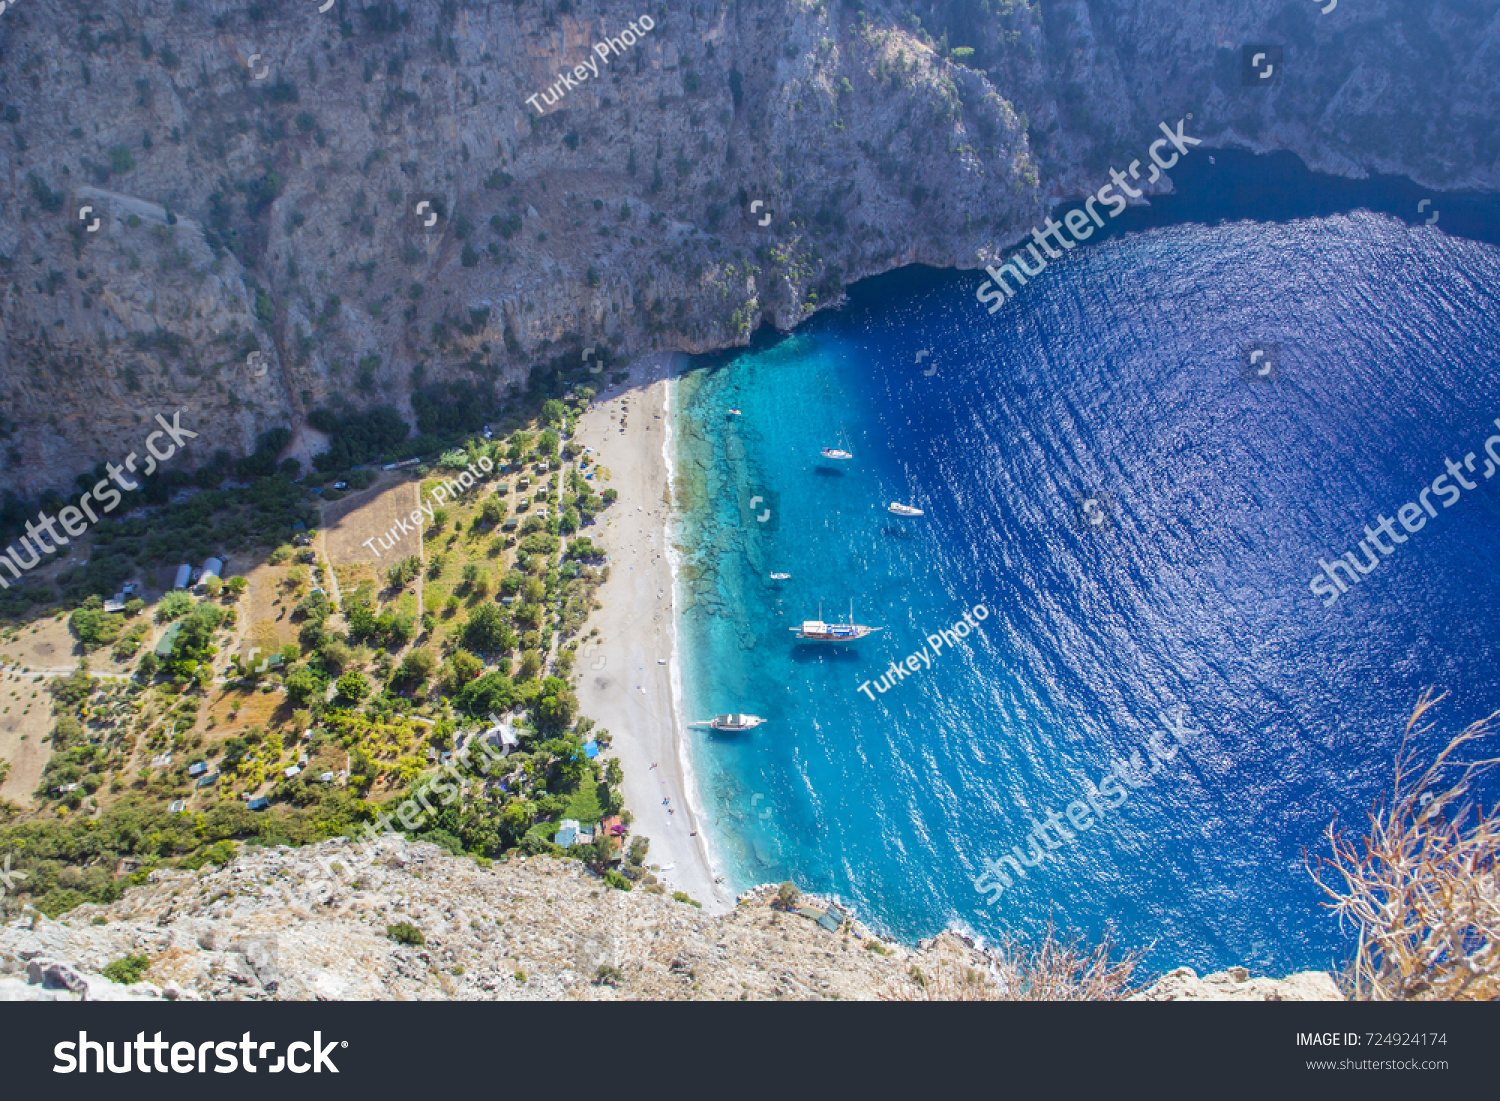 stock-photo-the-butterfly-valley-kelebek